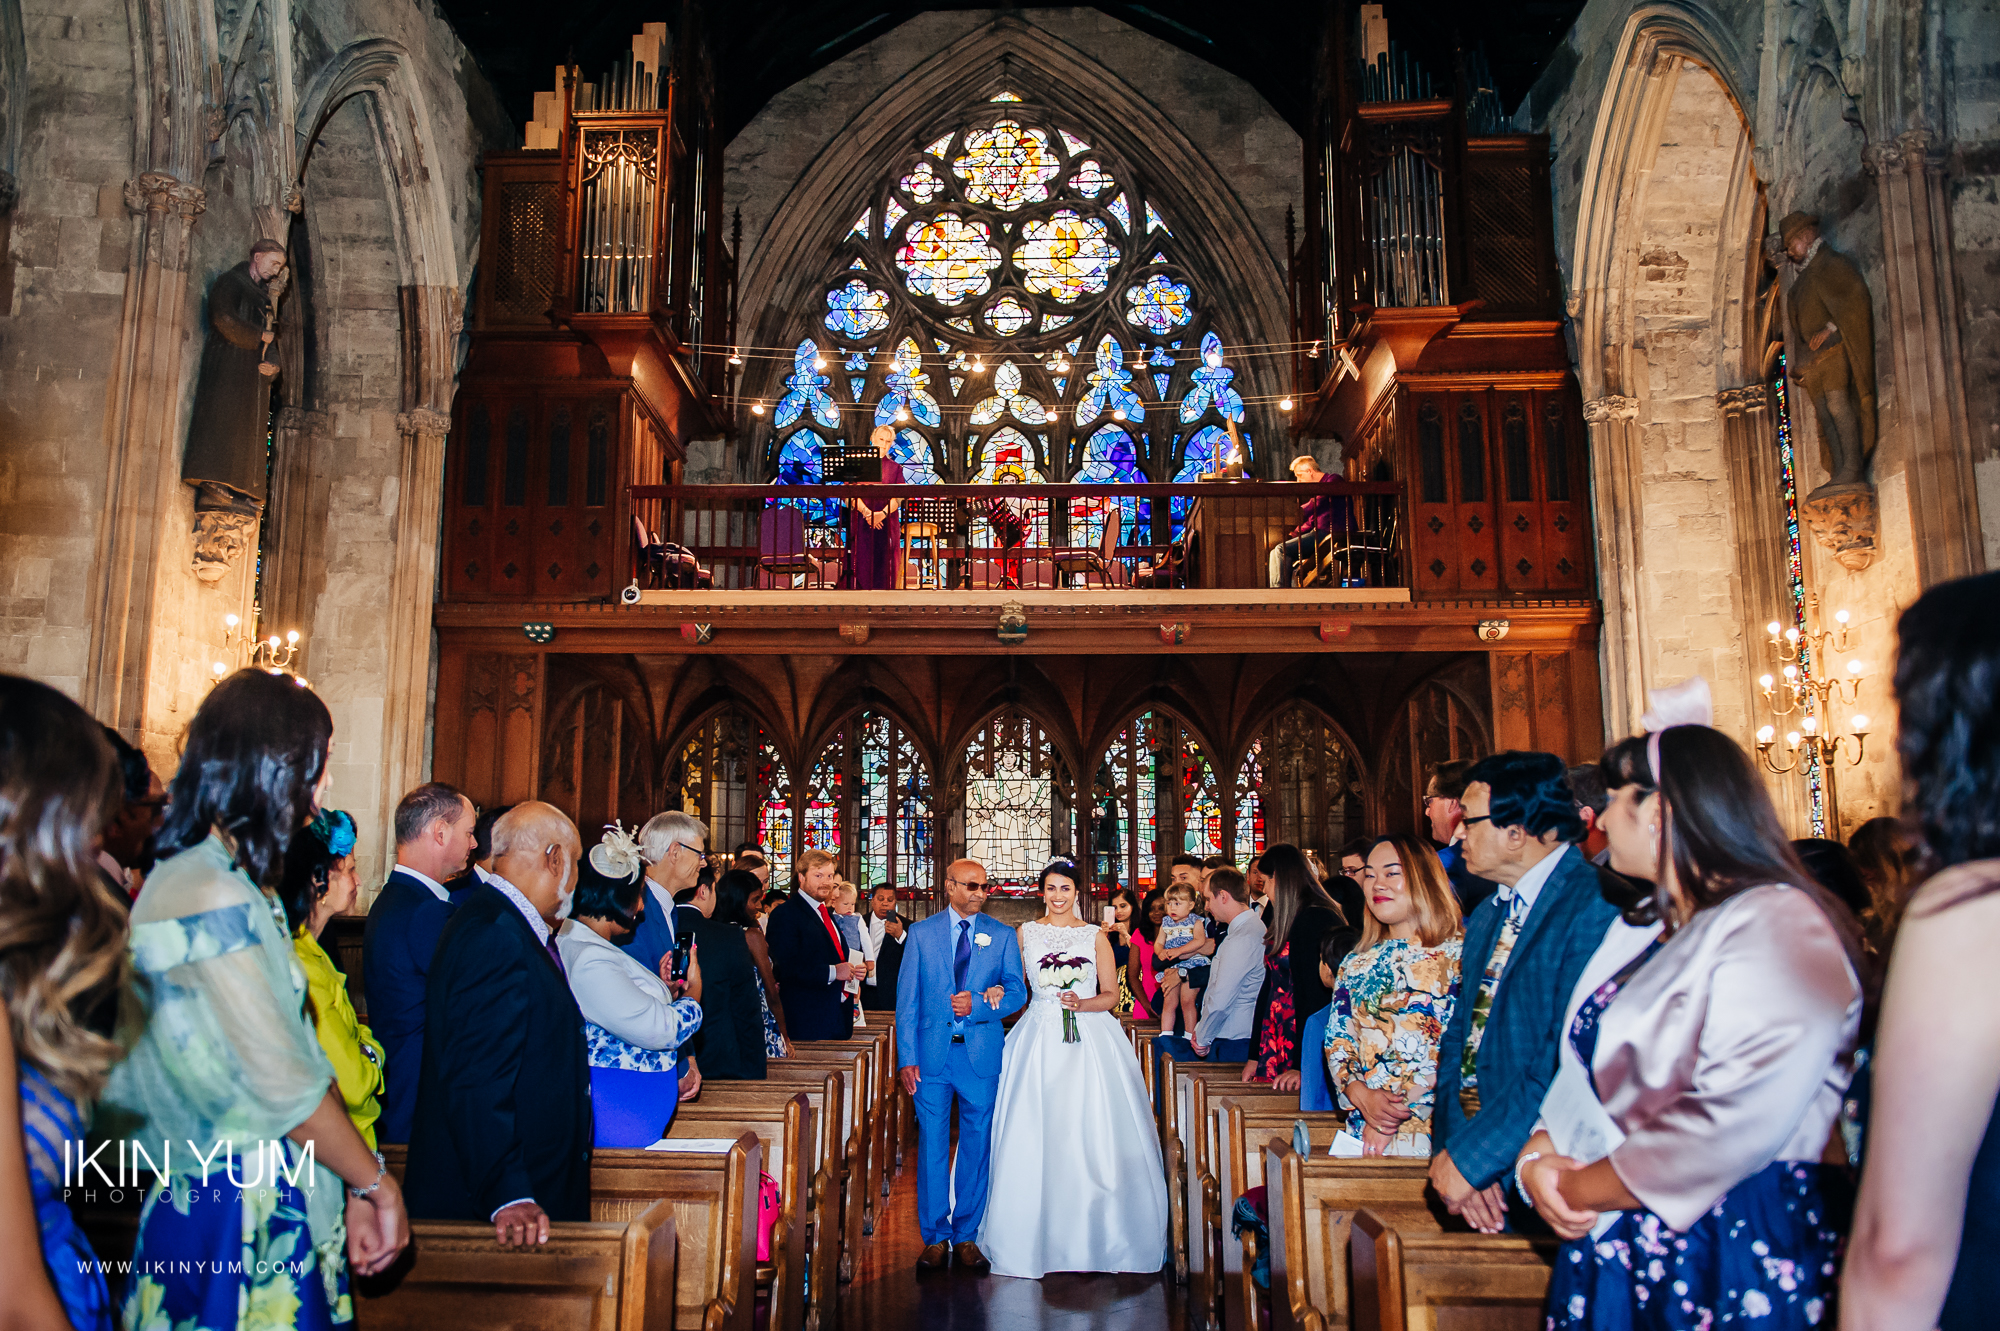 St etheldreda's church Wedding- Ikin Yum Photography-0031.jpg